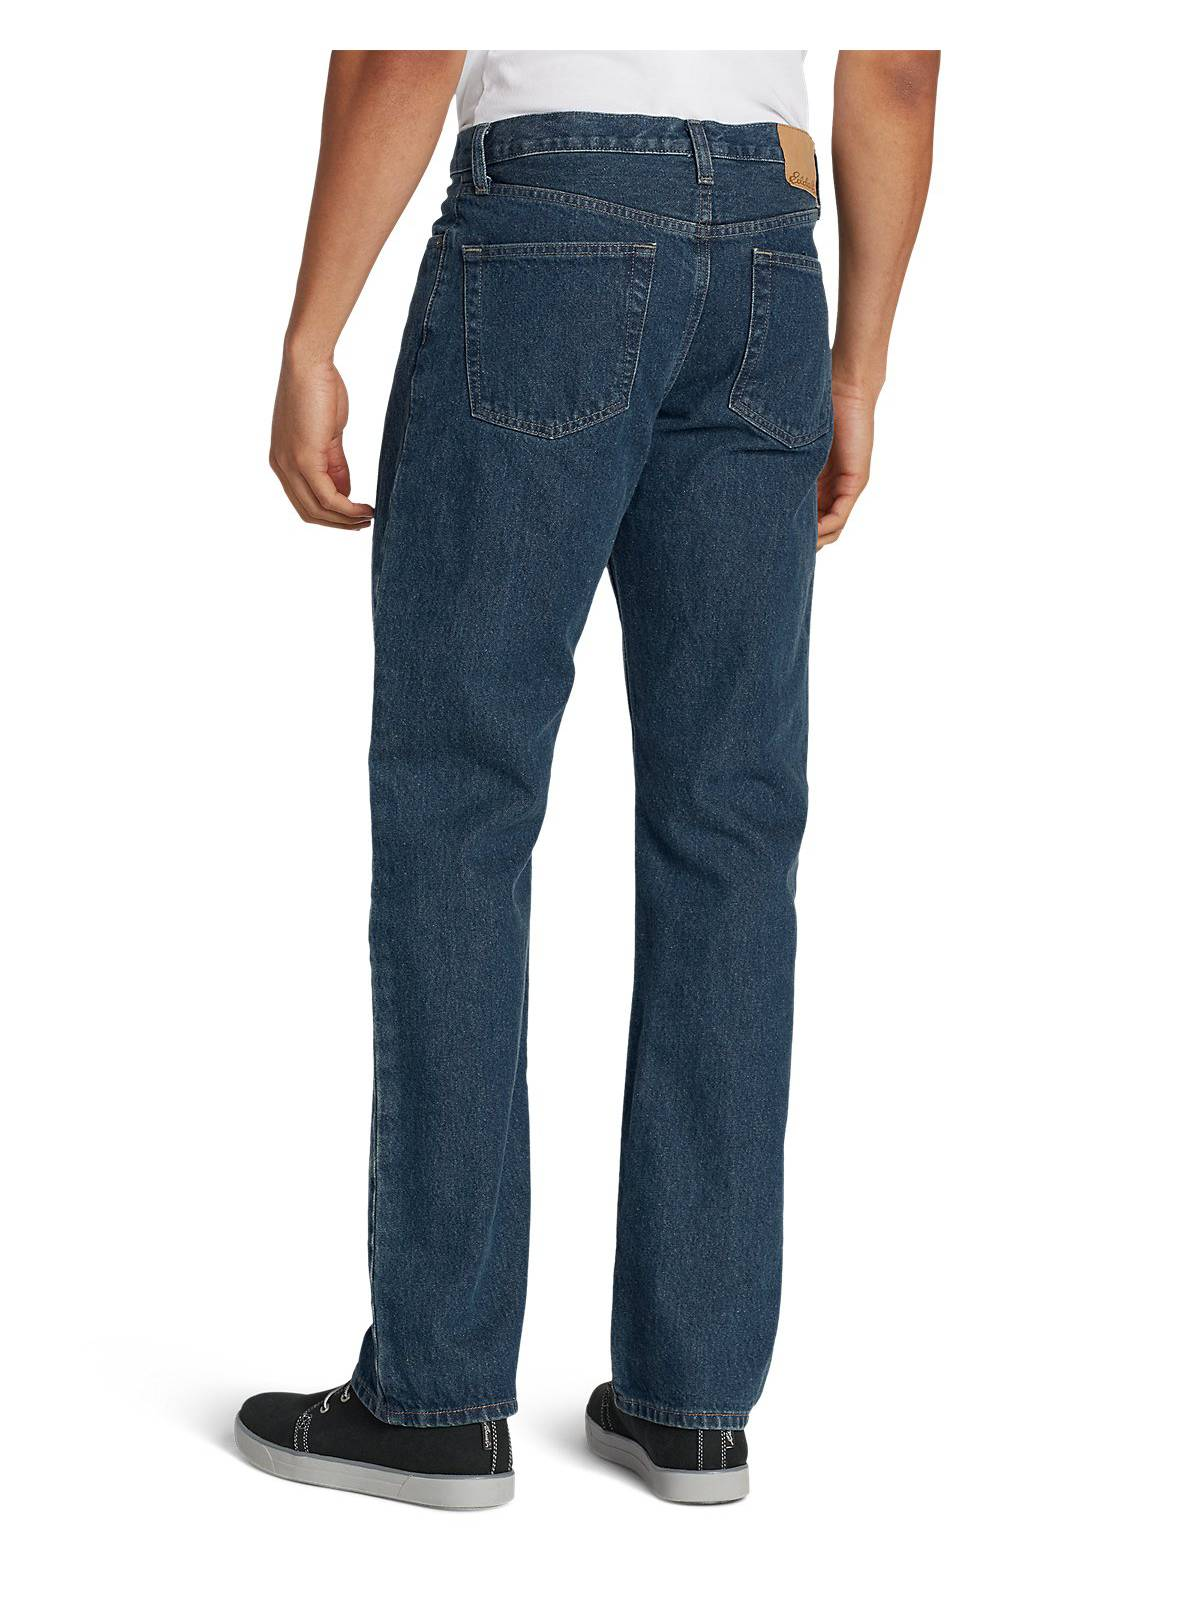 Eddie-Bauer-Men-039-s-Relaxed-Fit-Essential-Jeans thumbnail 3